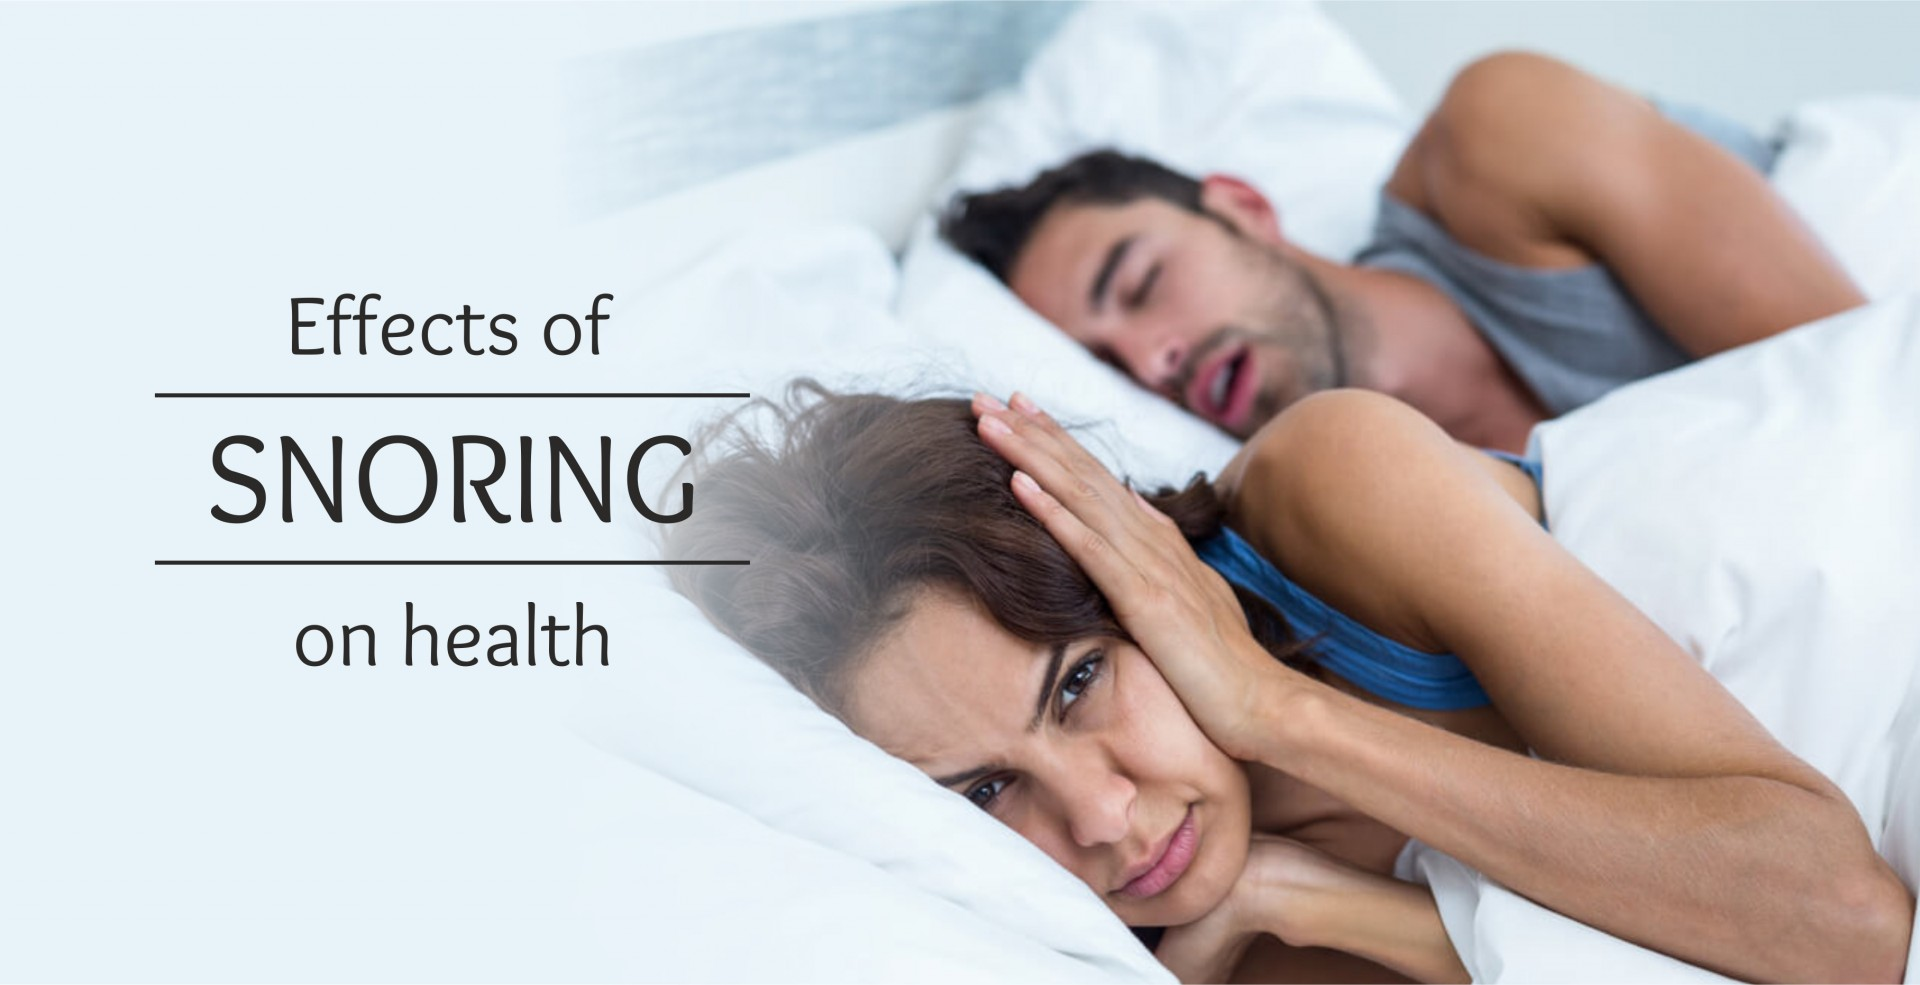 Effects of Snoring on Health